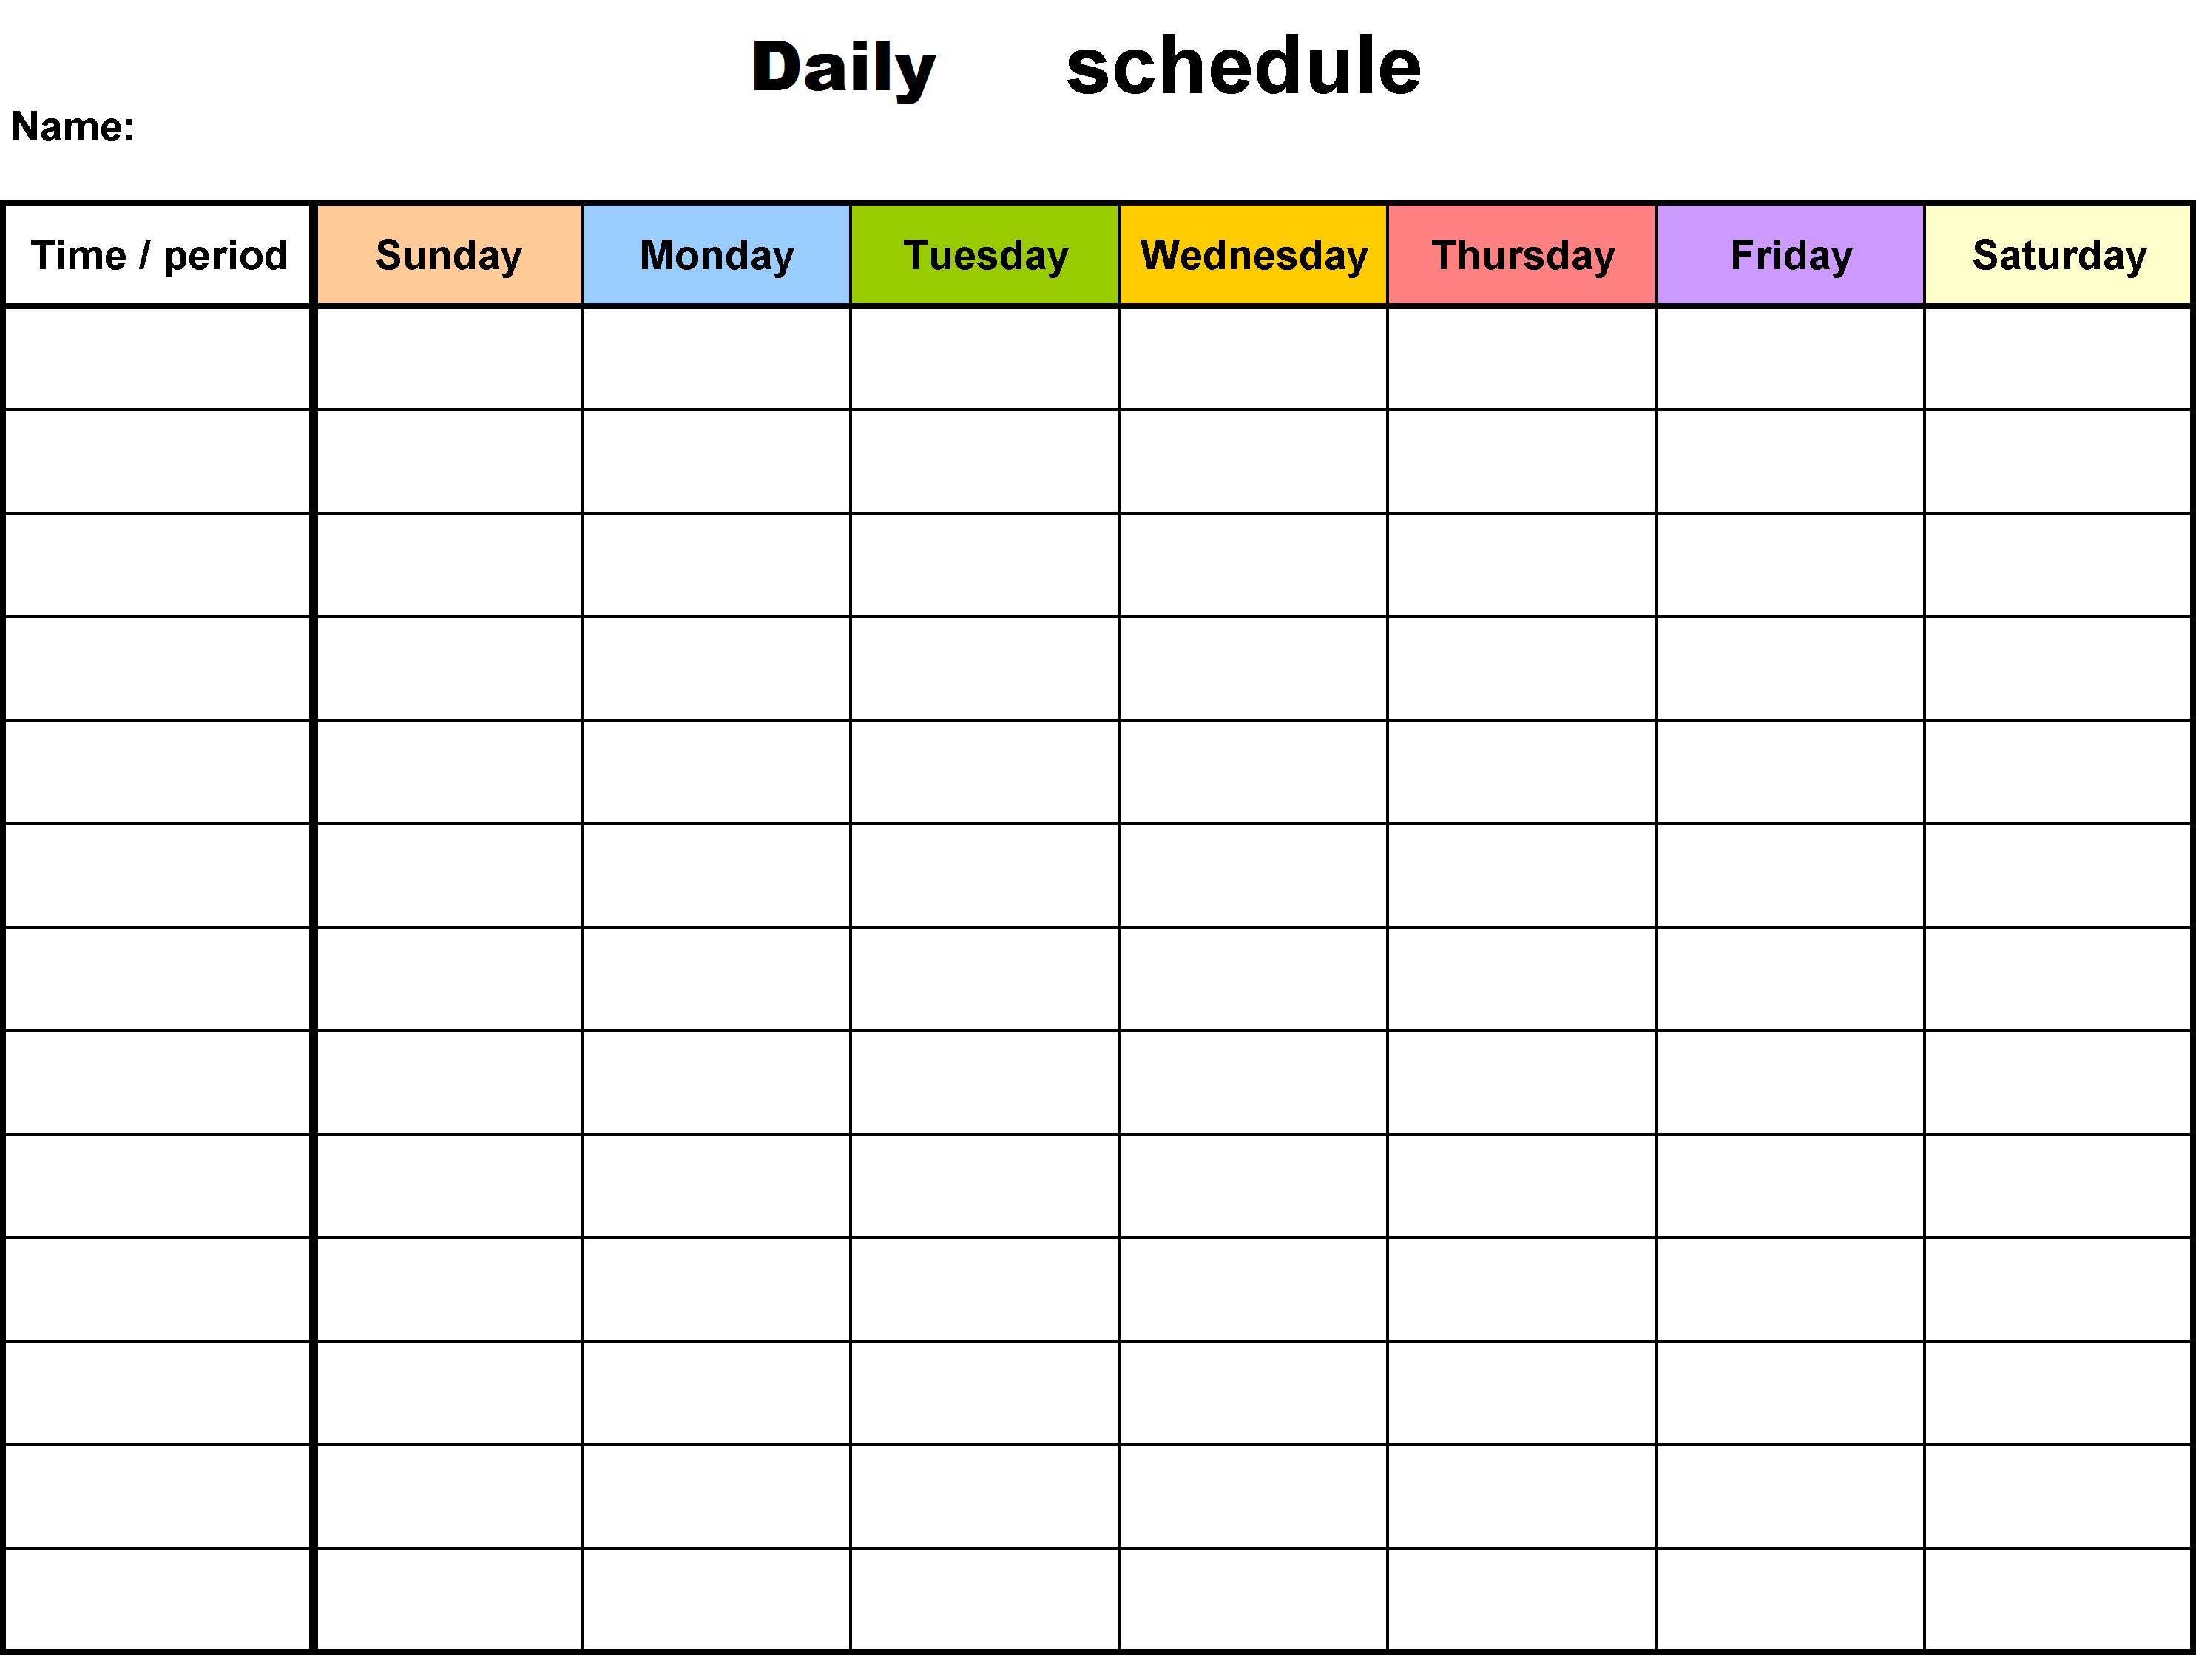 Daily Blank Calendar Template You Can Use For Office And